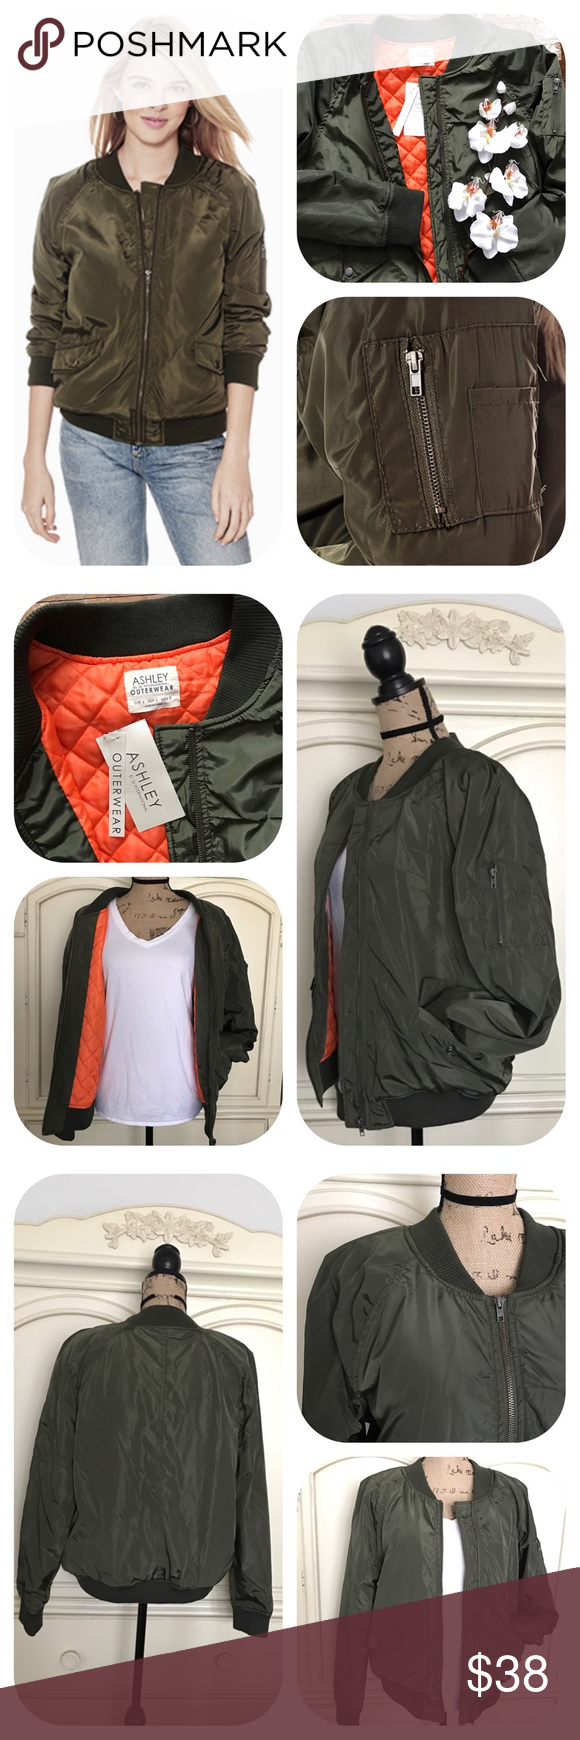 Ashley By 26 International Outerwear Bomber Jacket Bomber Jacket Clothes Design Outerwear [ 1740 x 580 Pixel ]